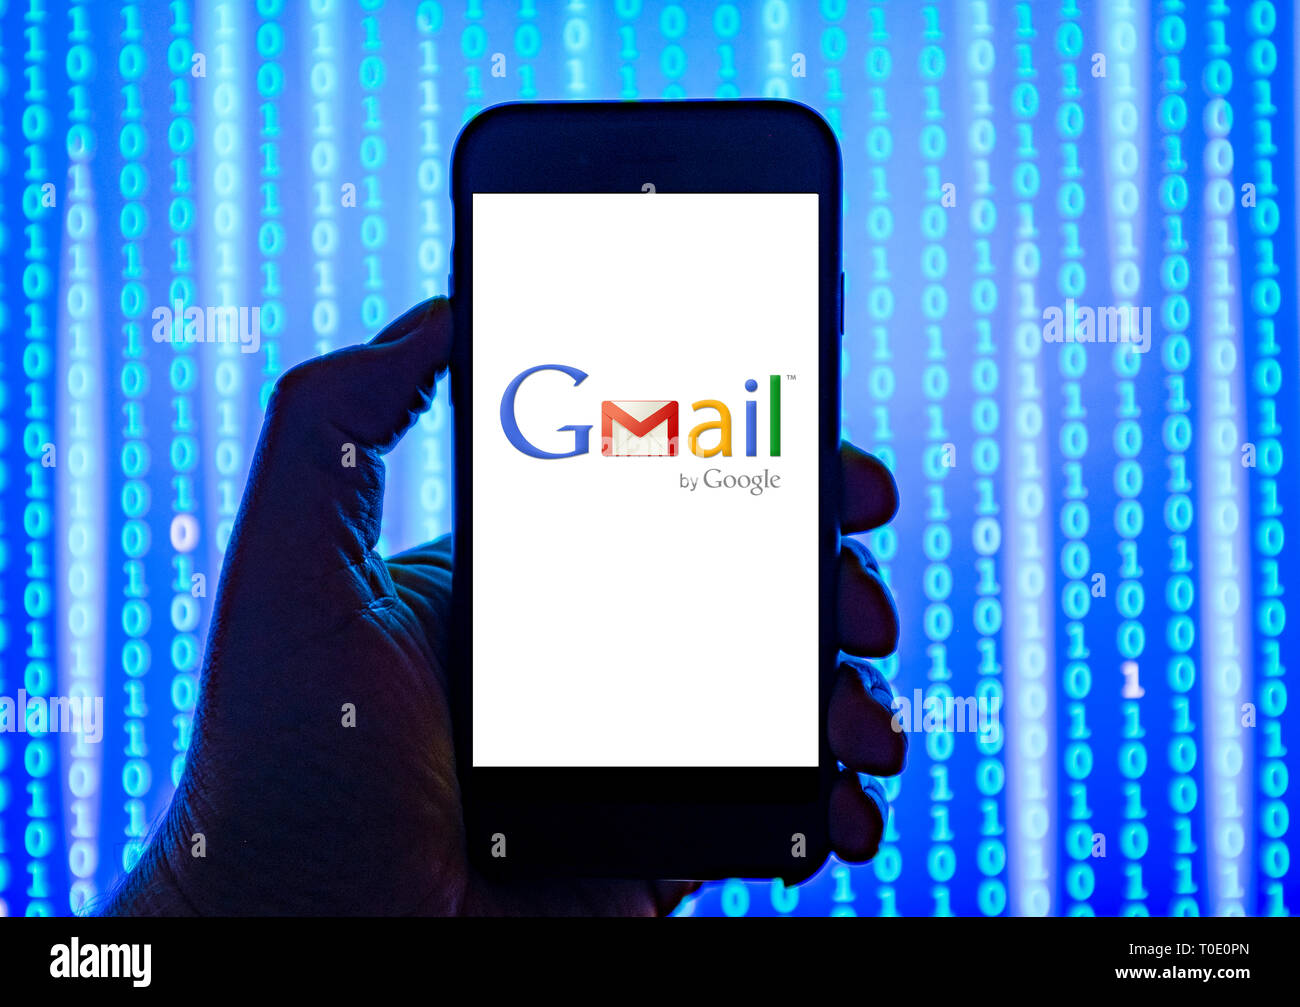 Person holding smart phone with Google Gmail email logo displayed on the screen. - Stock Image